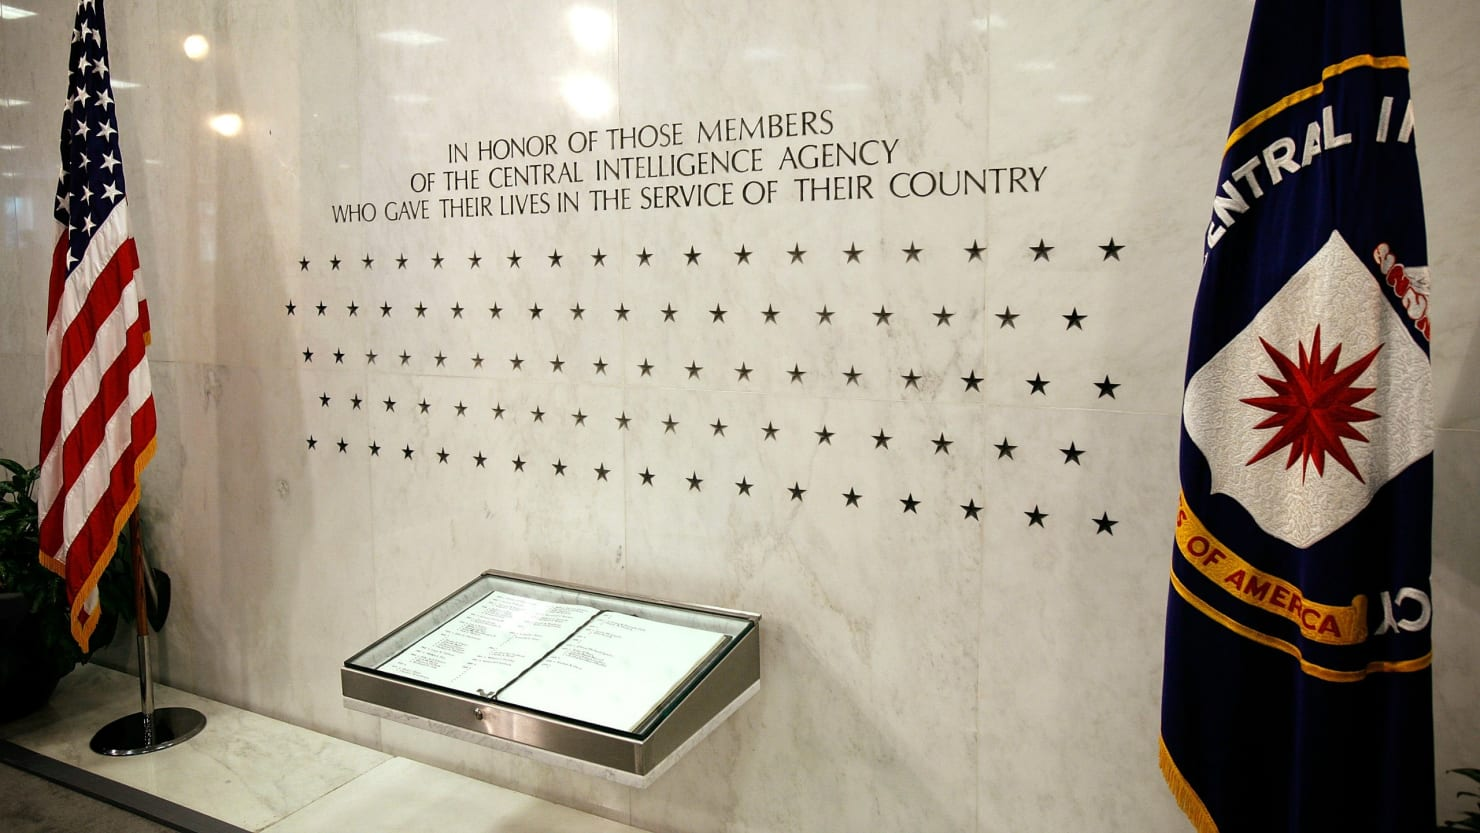 CIA Adds Stars for Four Fallen Agents to Its Memorial